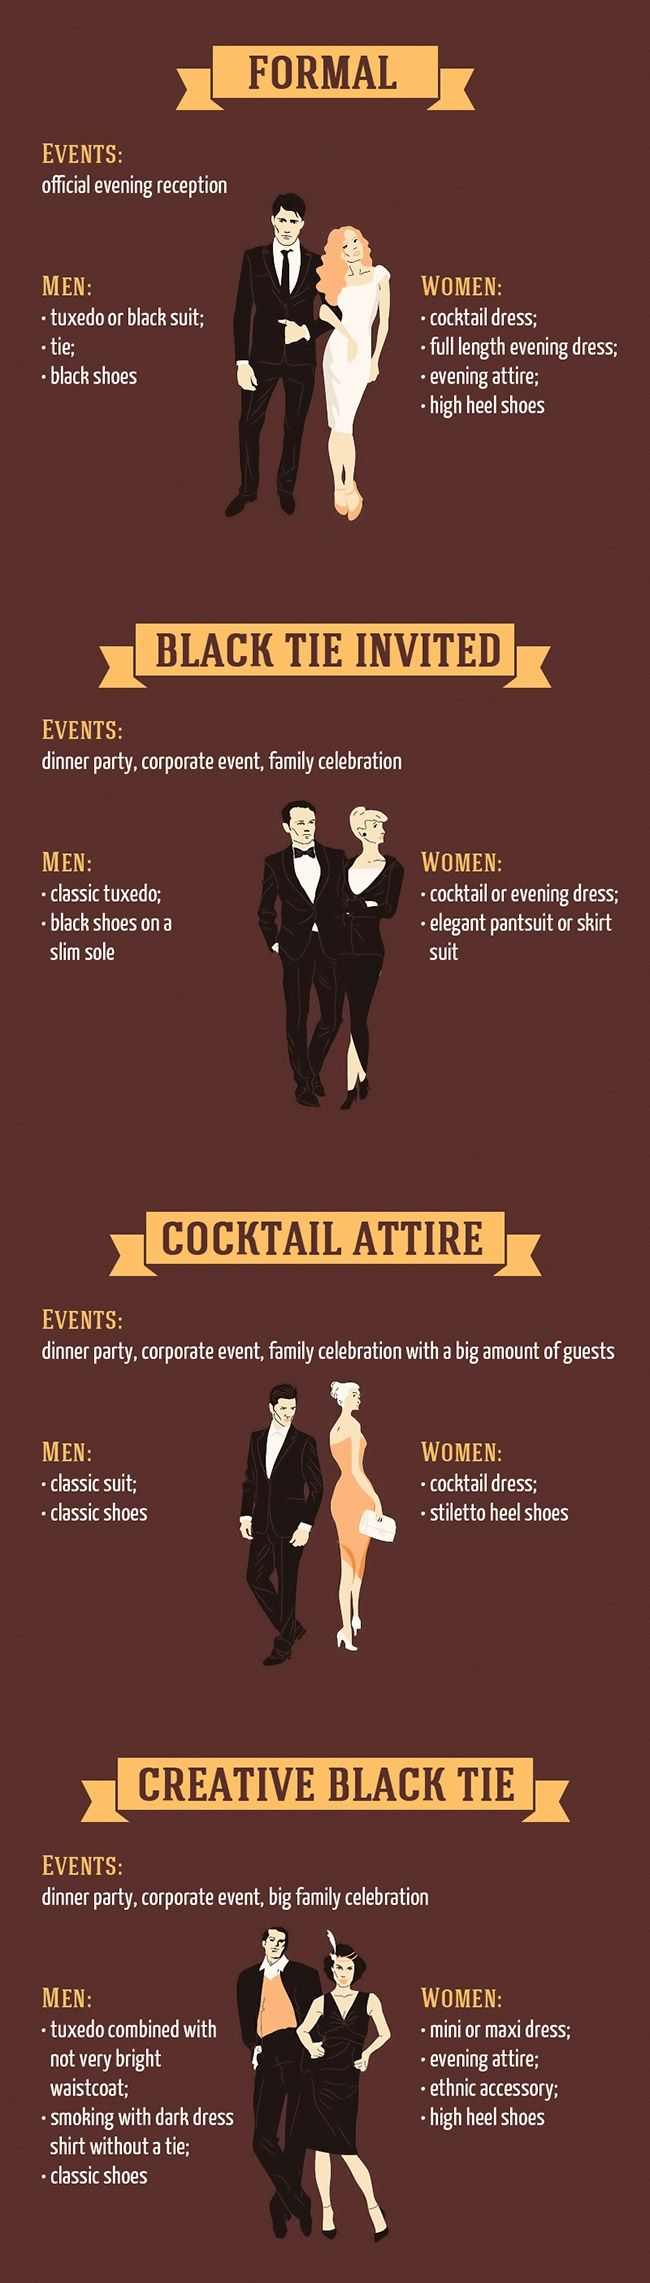 The Best Guide to Basic Dress Code Rules 2 #Infografía #Infographic